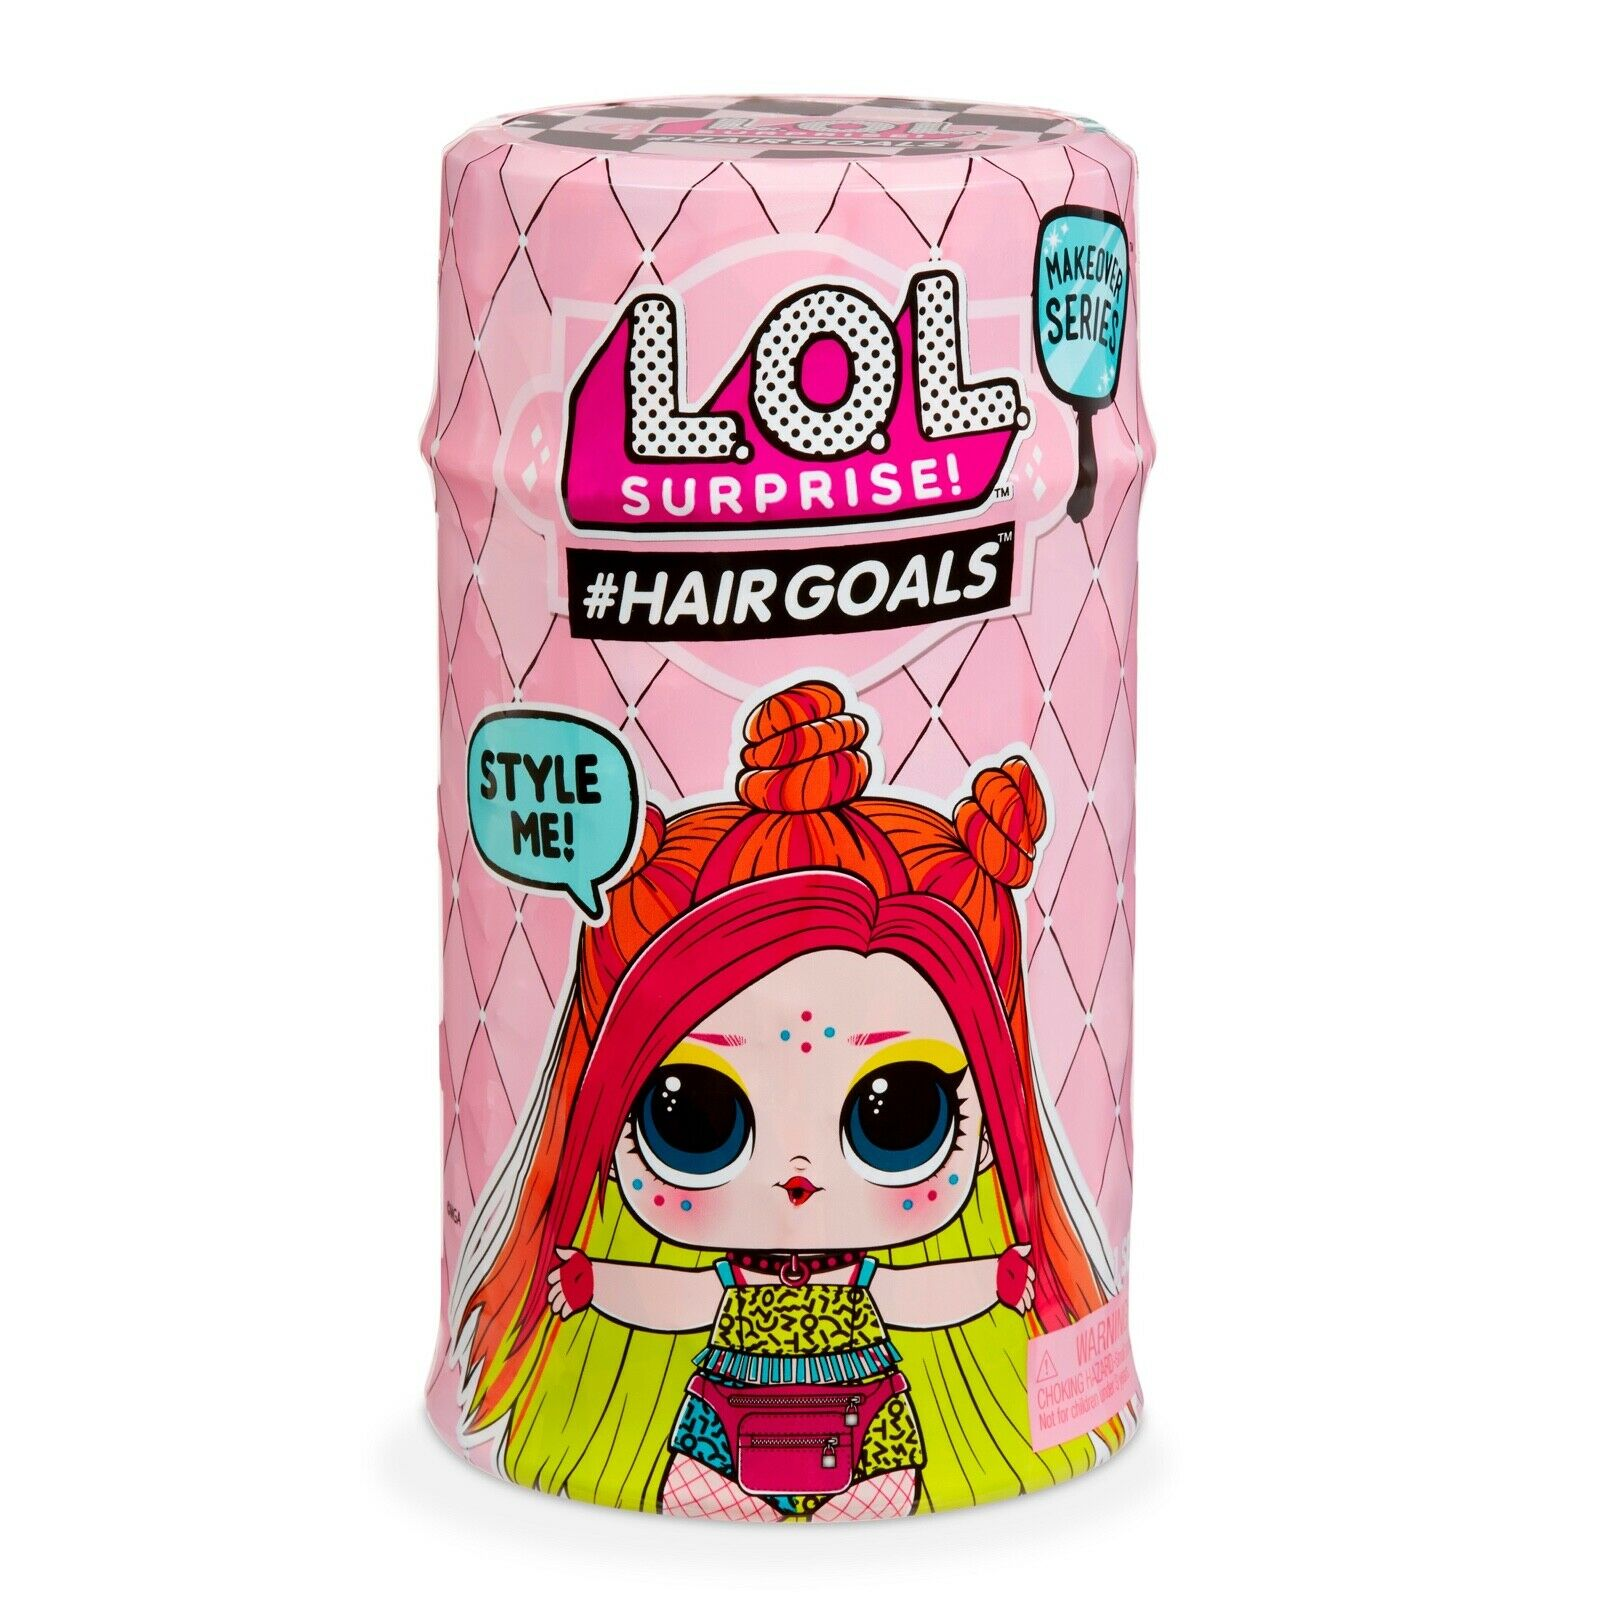 LOL Surprise HairGoals IN HAND Series 5 Makeover # Hair goals Authentic 1 Doll